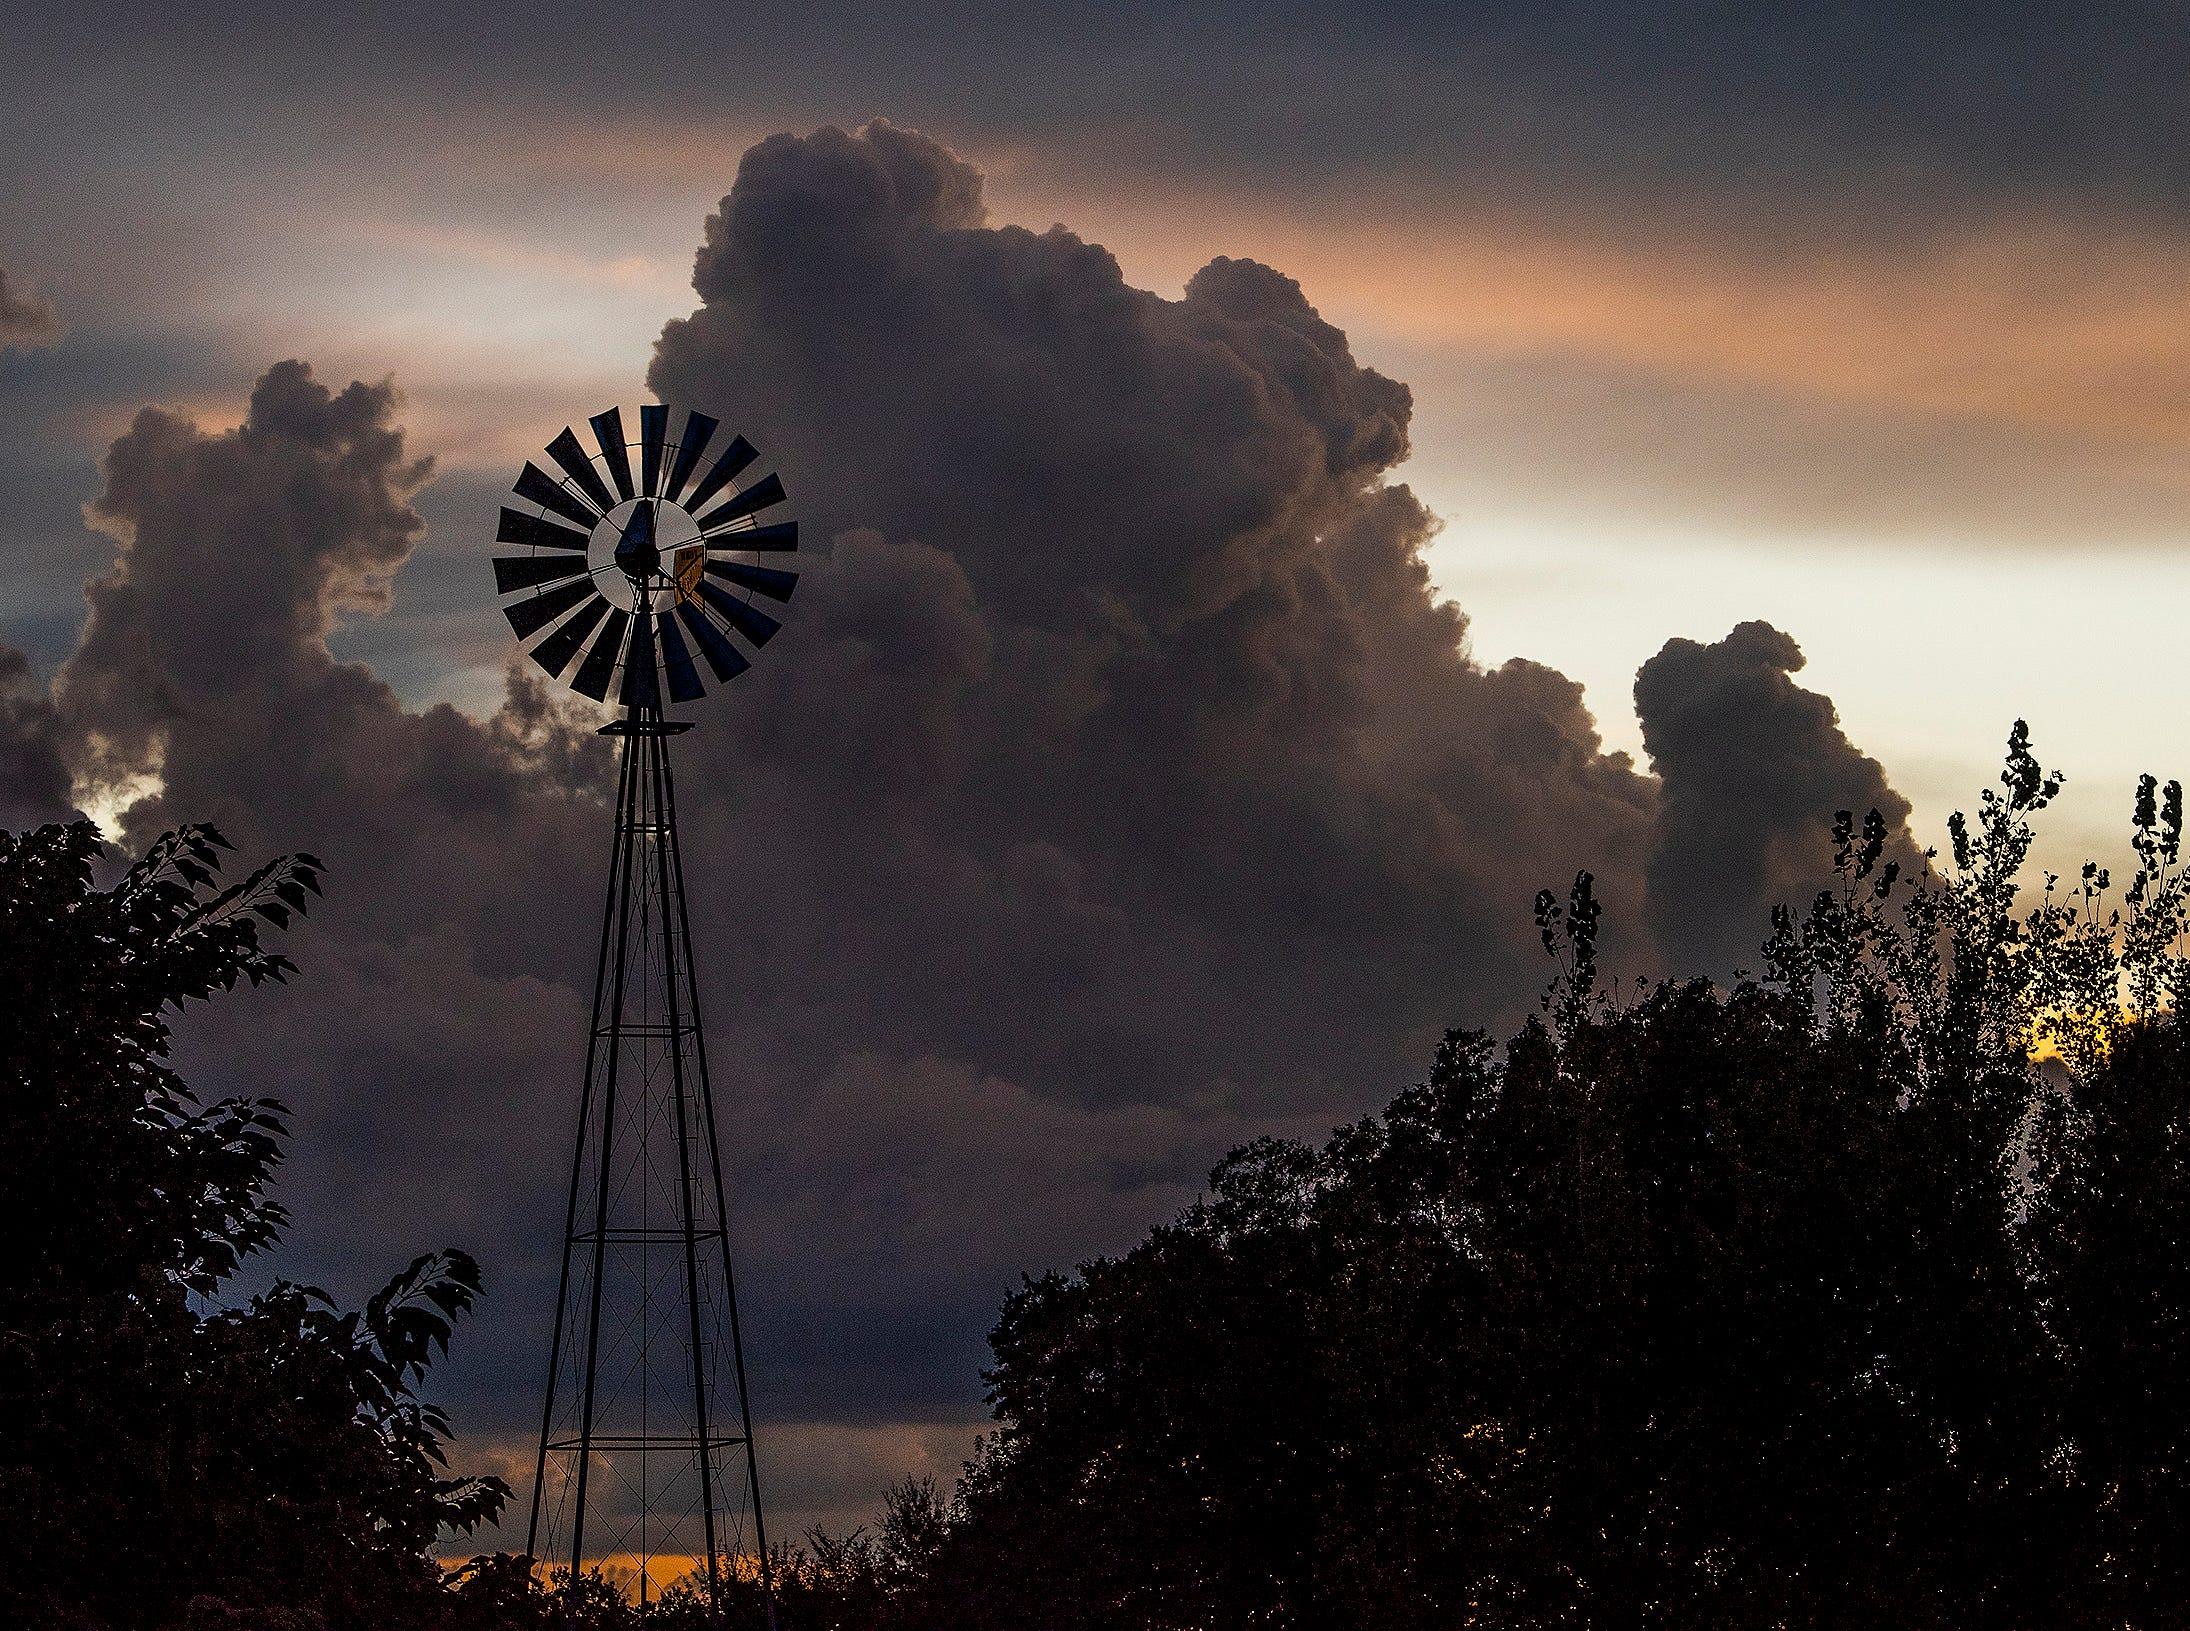 Storm clouds at sunset at the Eat South farm in downtown Montgomery, Ala., on August 28, 2018.